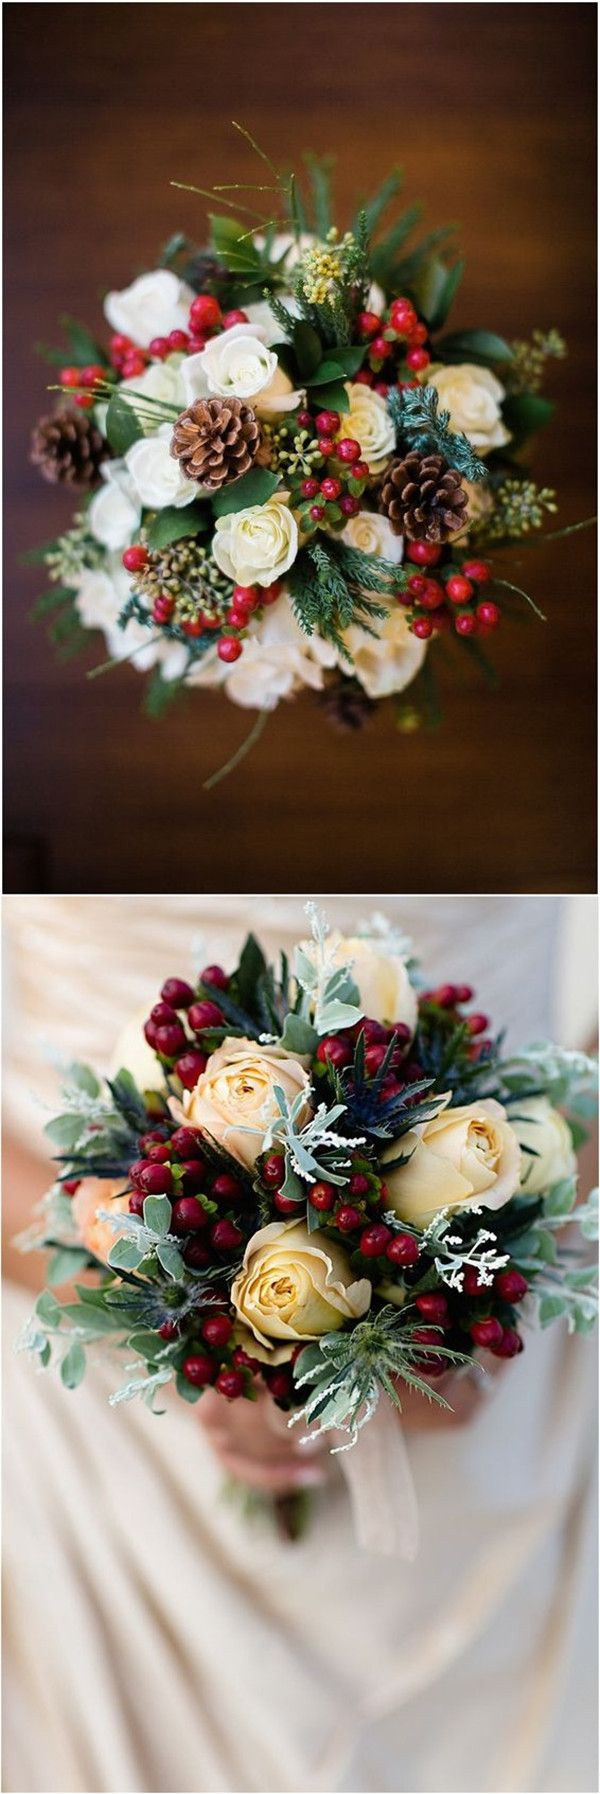 16 Christmas Wedding Ideas You Can T Miss Christmas Wedding